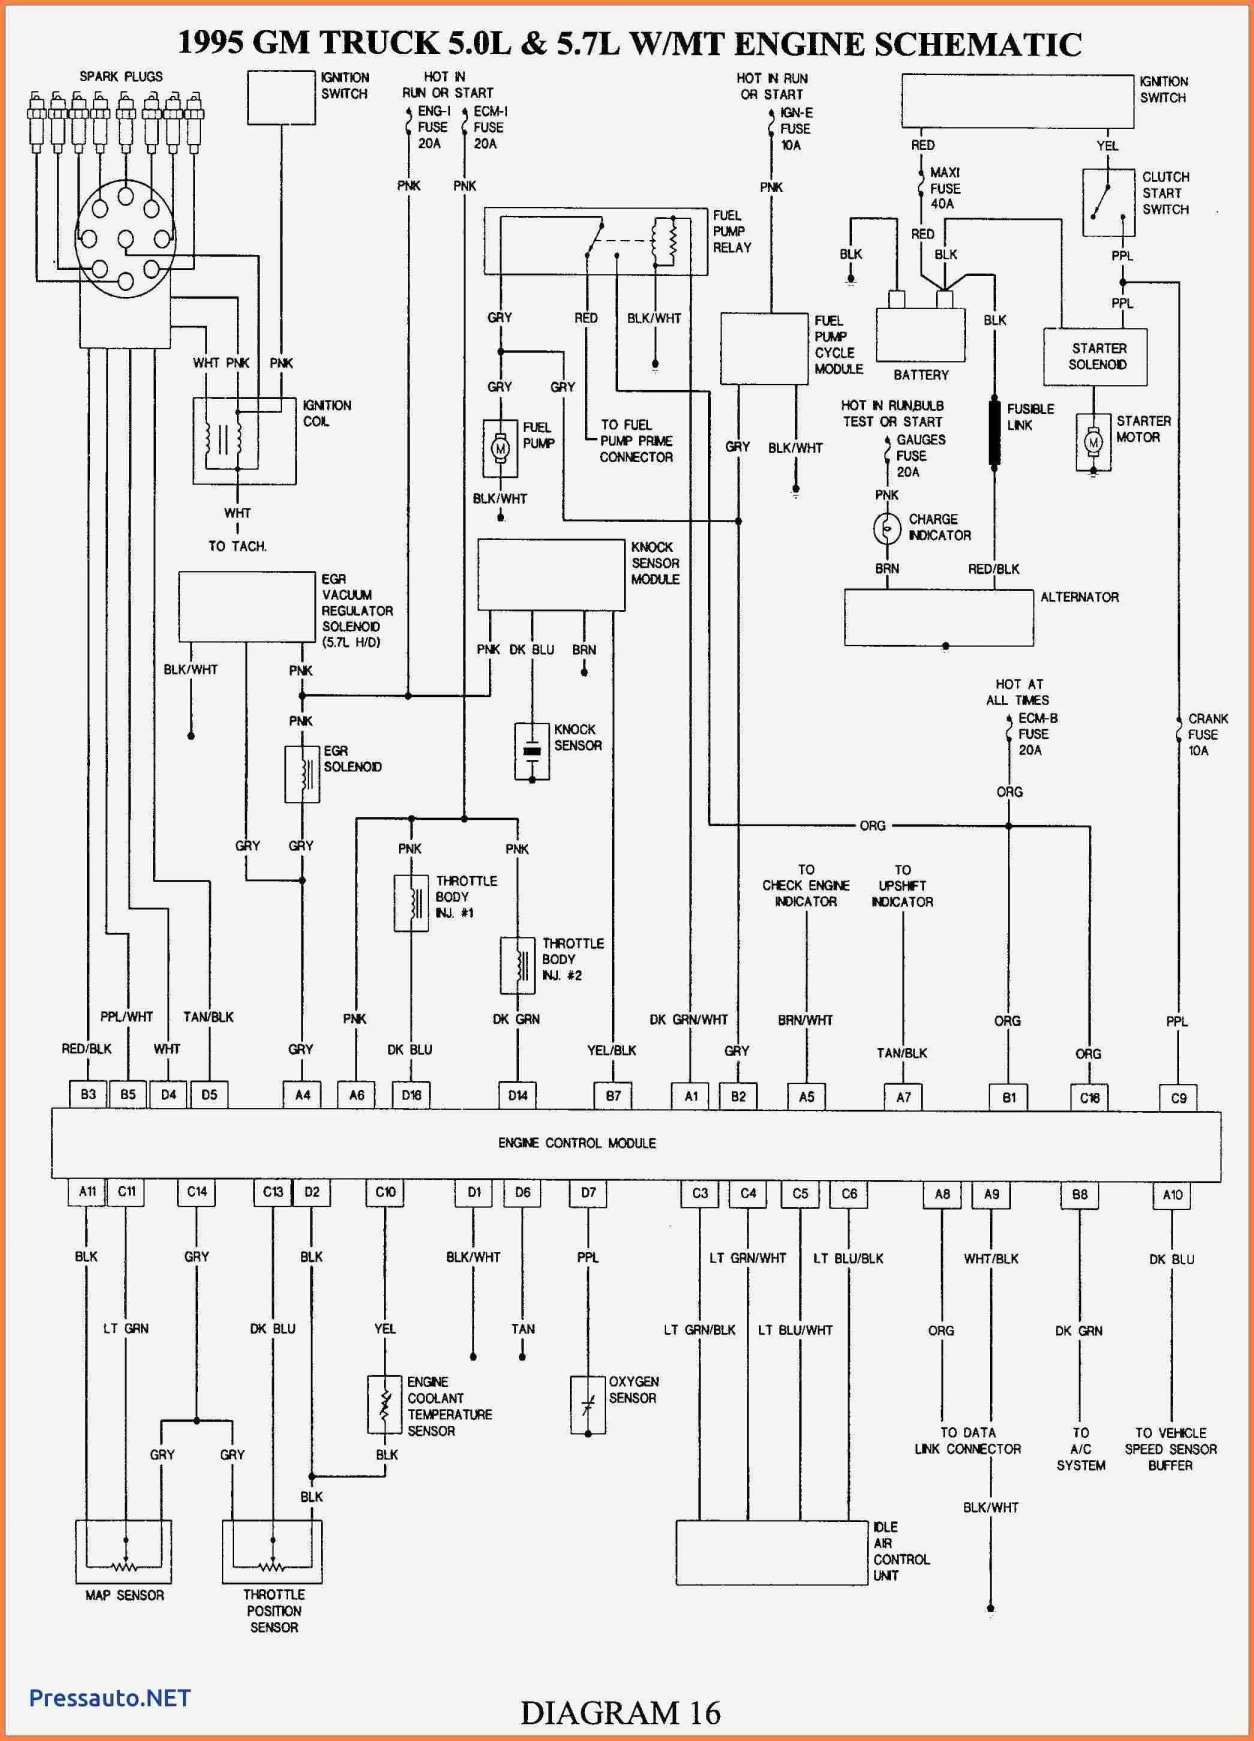 2002 Chevy S10 Wiring Diagram - wiring diagram solid-page -  solid-page.albergoinsicilia.it | Wiring Diagram For 2002 Chevy S10 |  | solid-page.albergoinsicilia.it